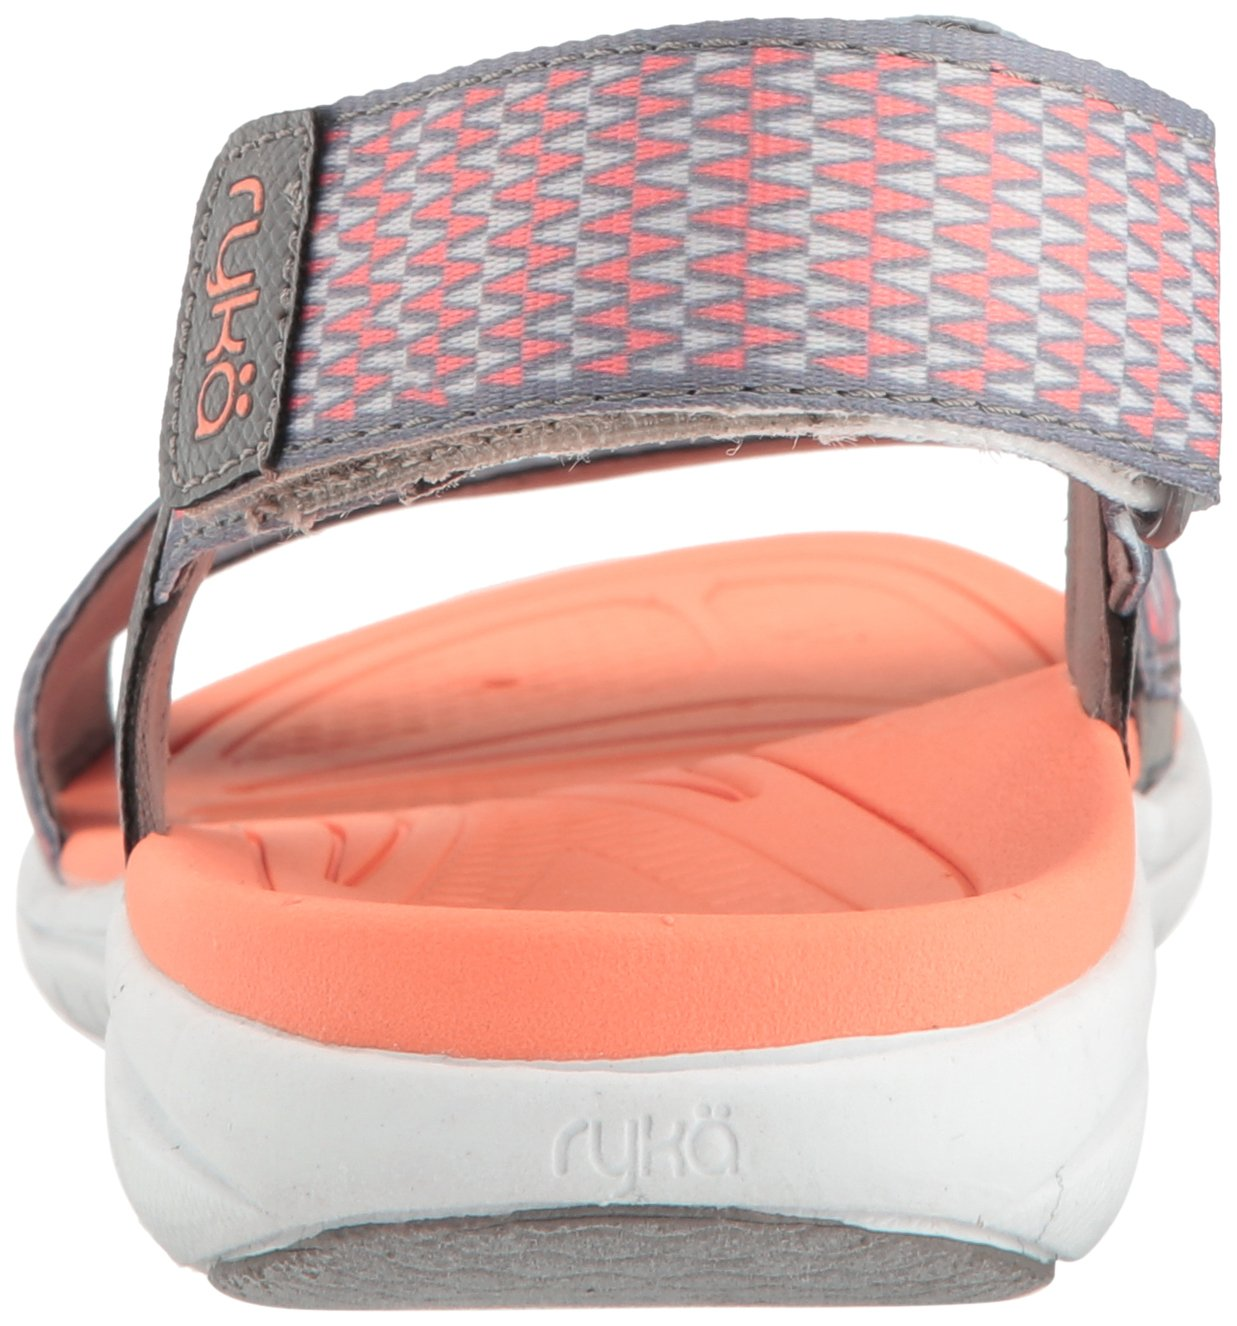 Ryka Women's Belmar Athletic Sandal B01KWH5SUM 8.5 B(M) US|Grey/Coral